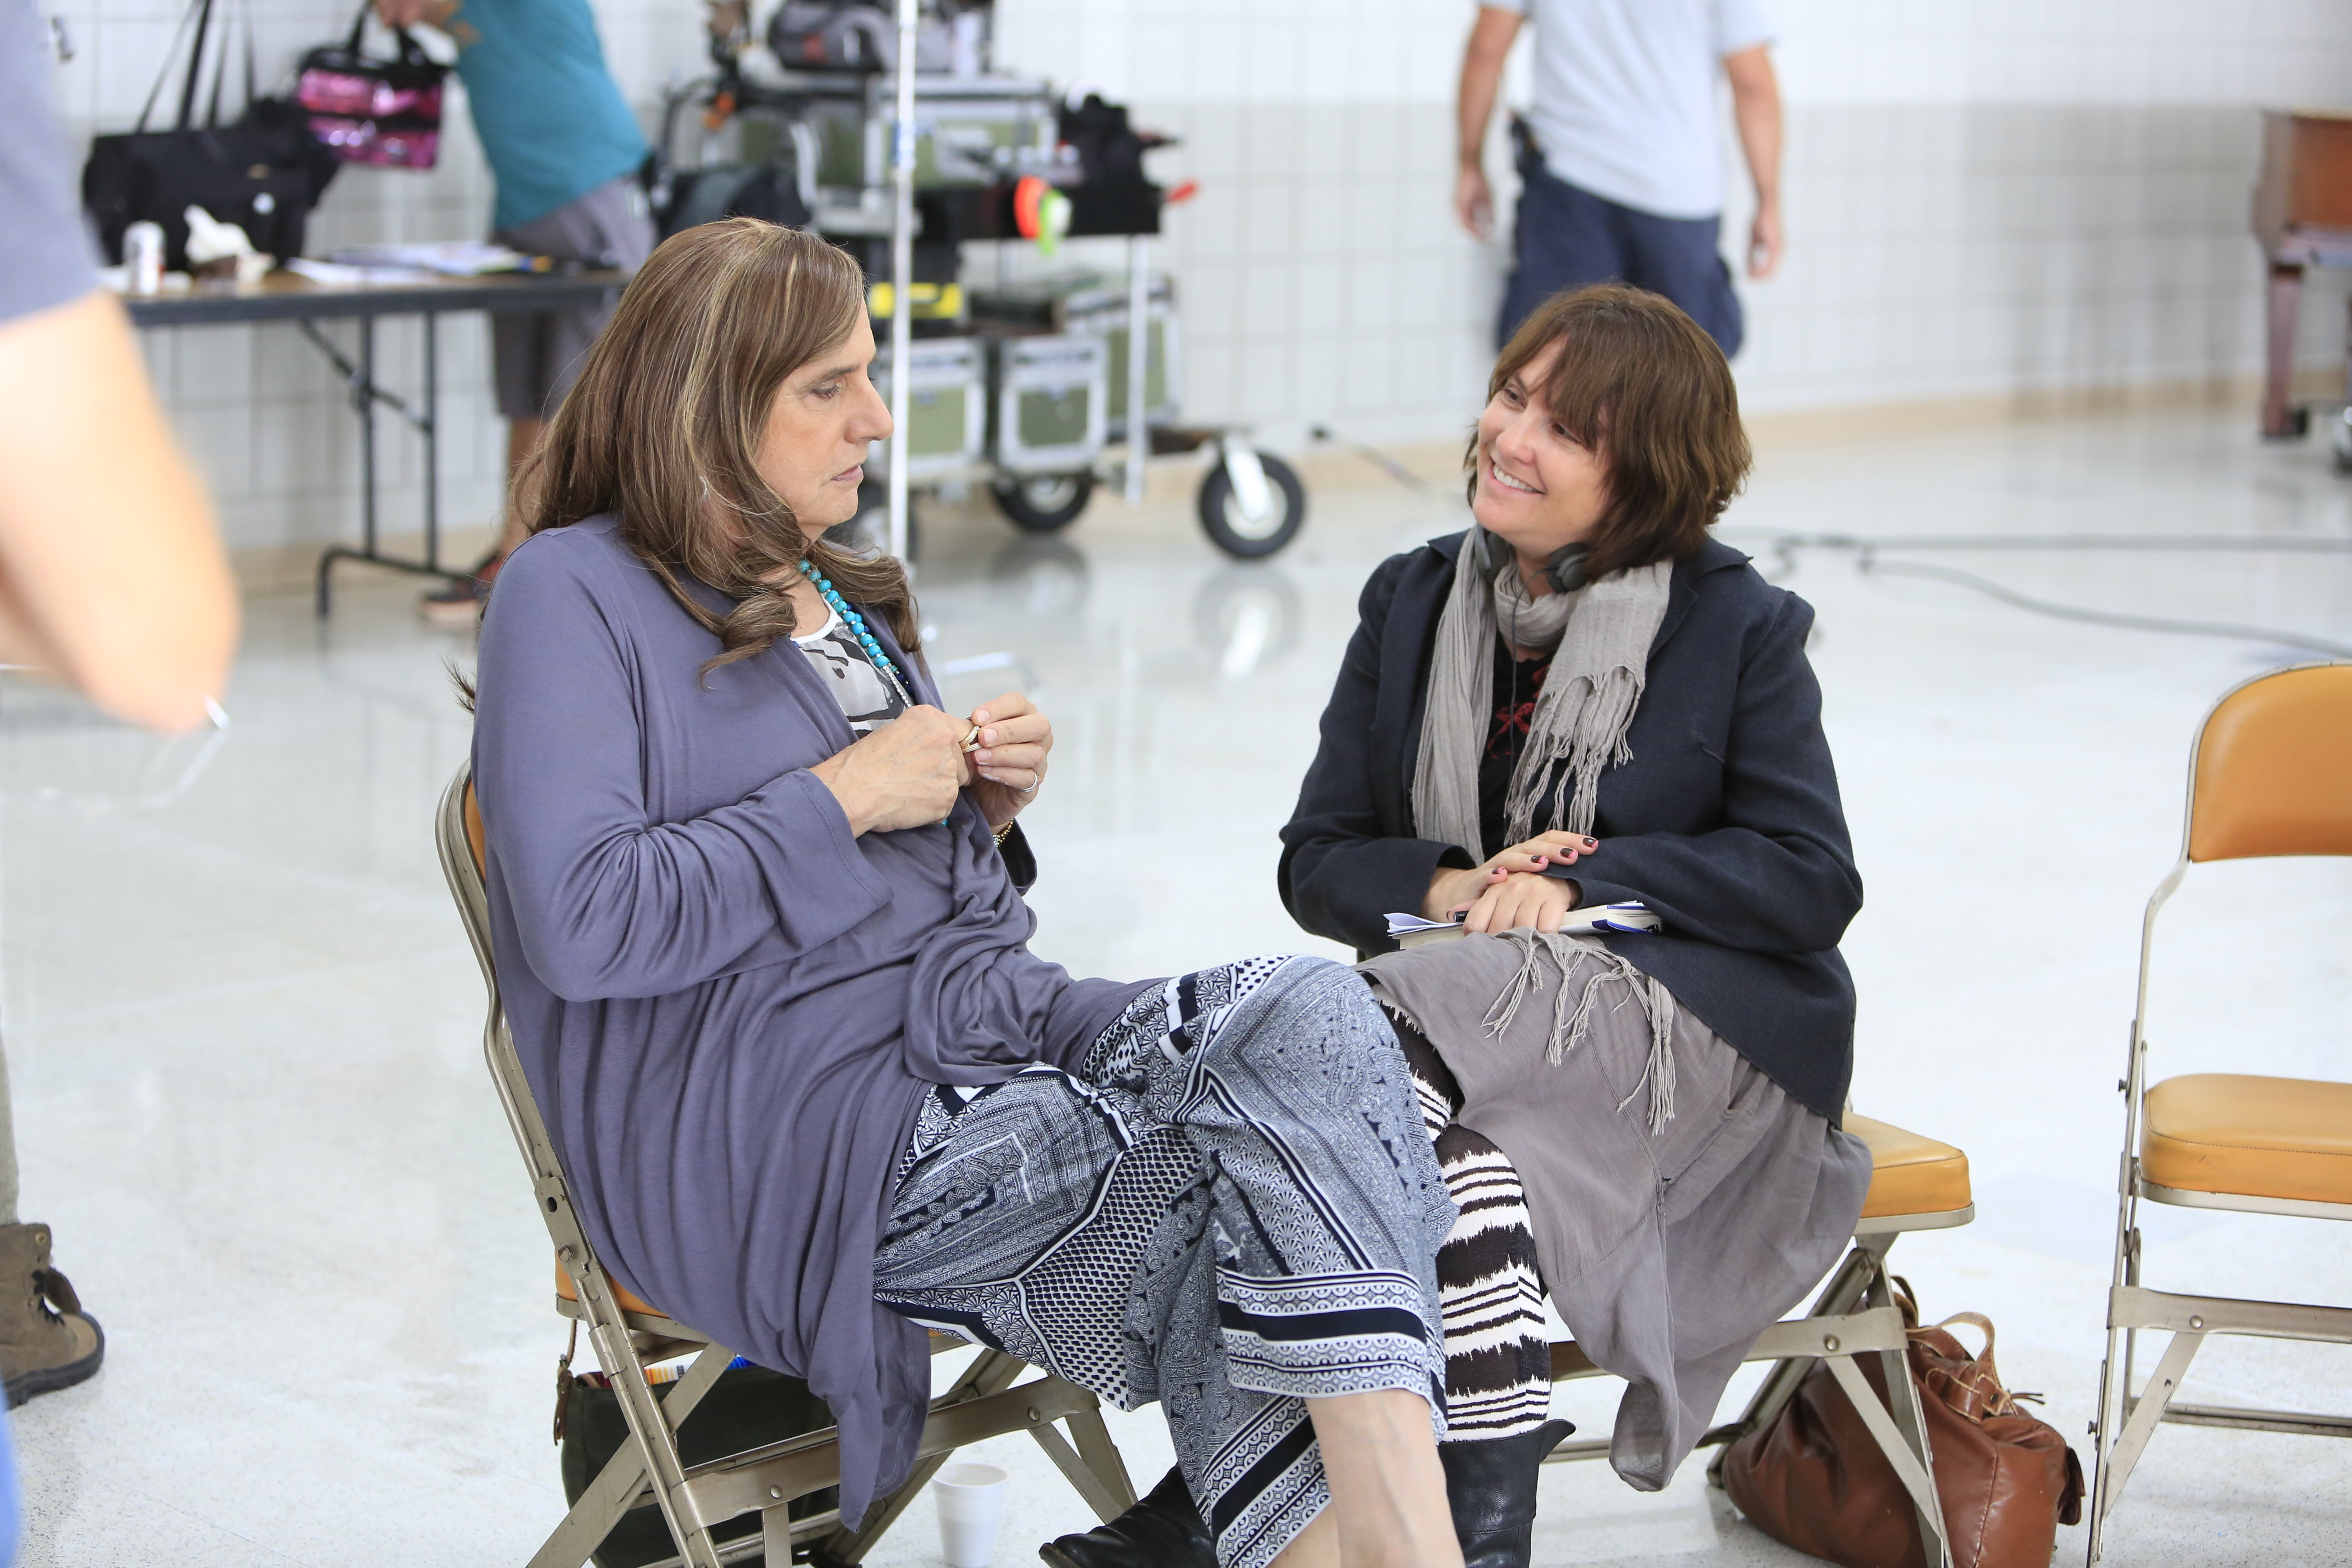 Actor Jeffrey Tambor and Writer/Director Jill Soloway on the set of Transparent